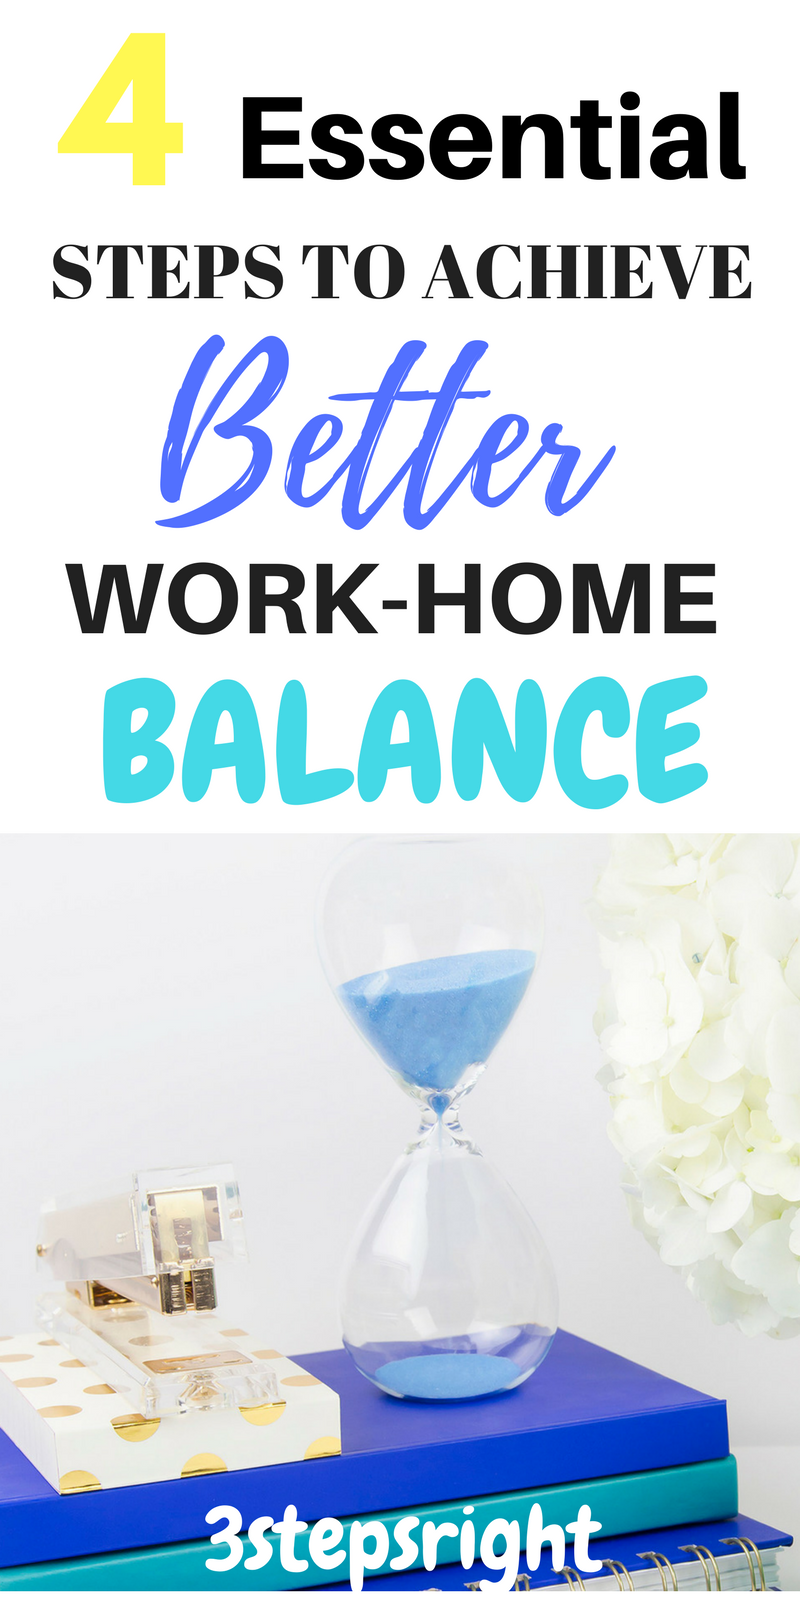 9. 4 steps to maintain work-home balance.png